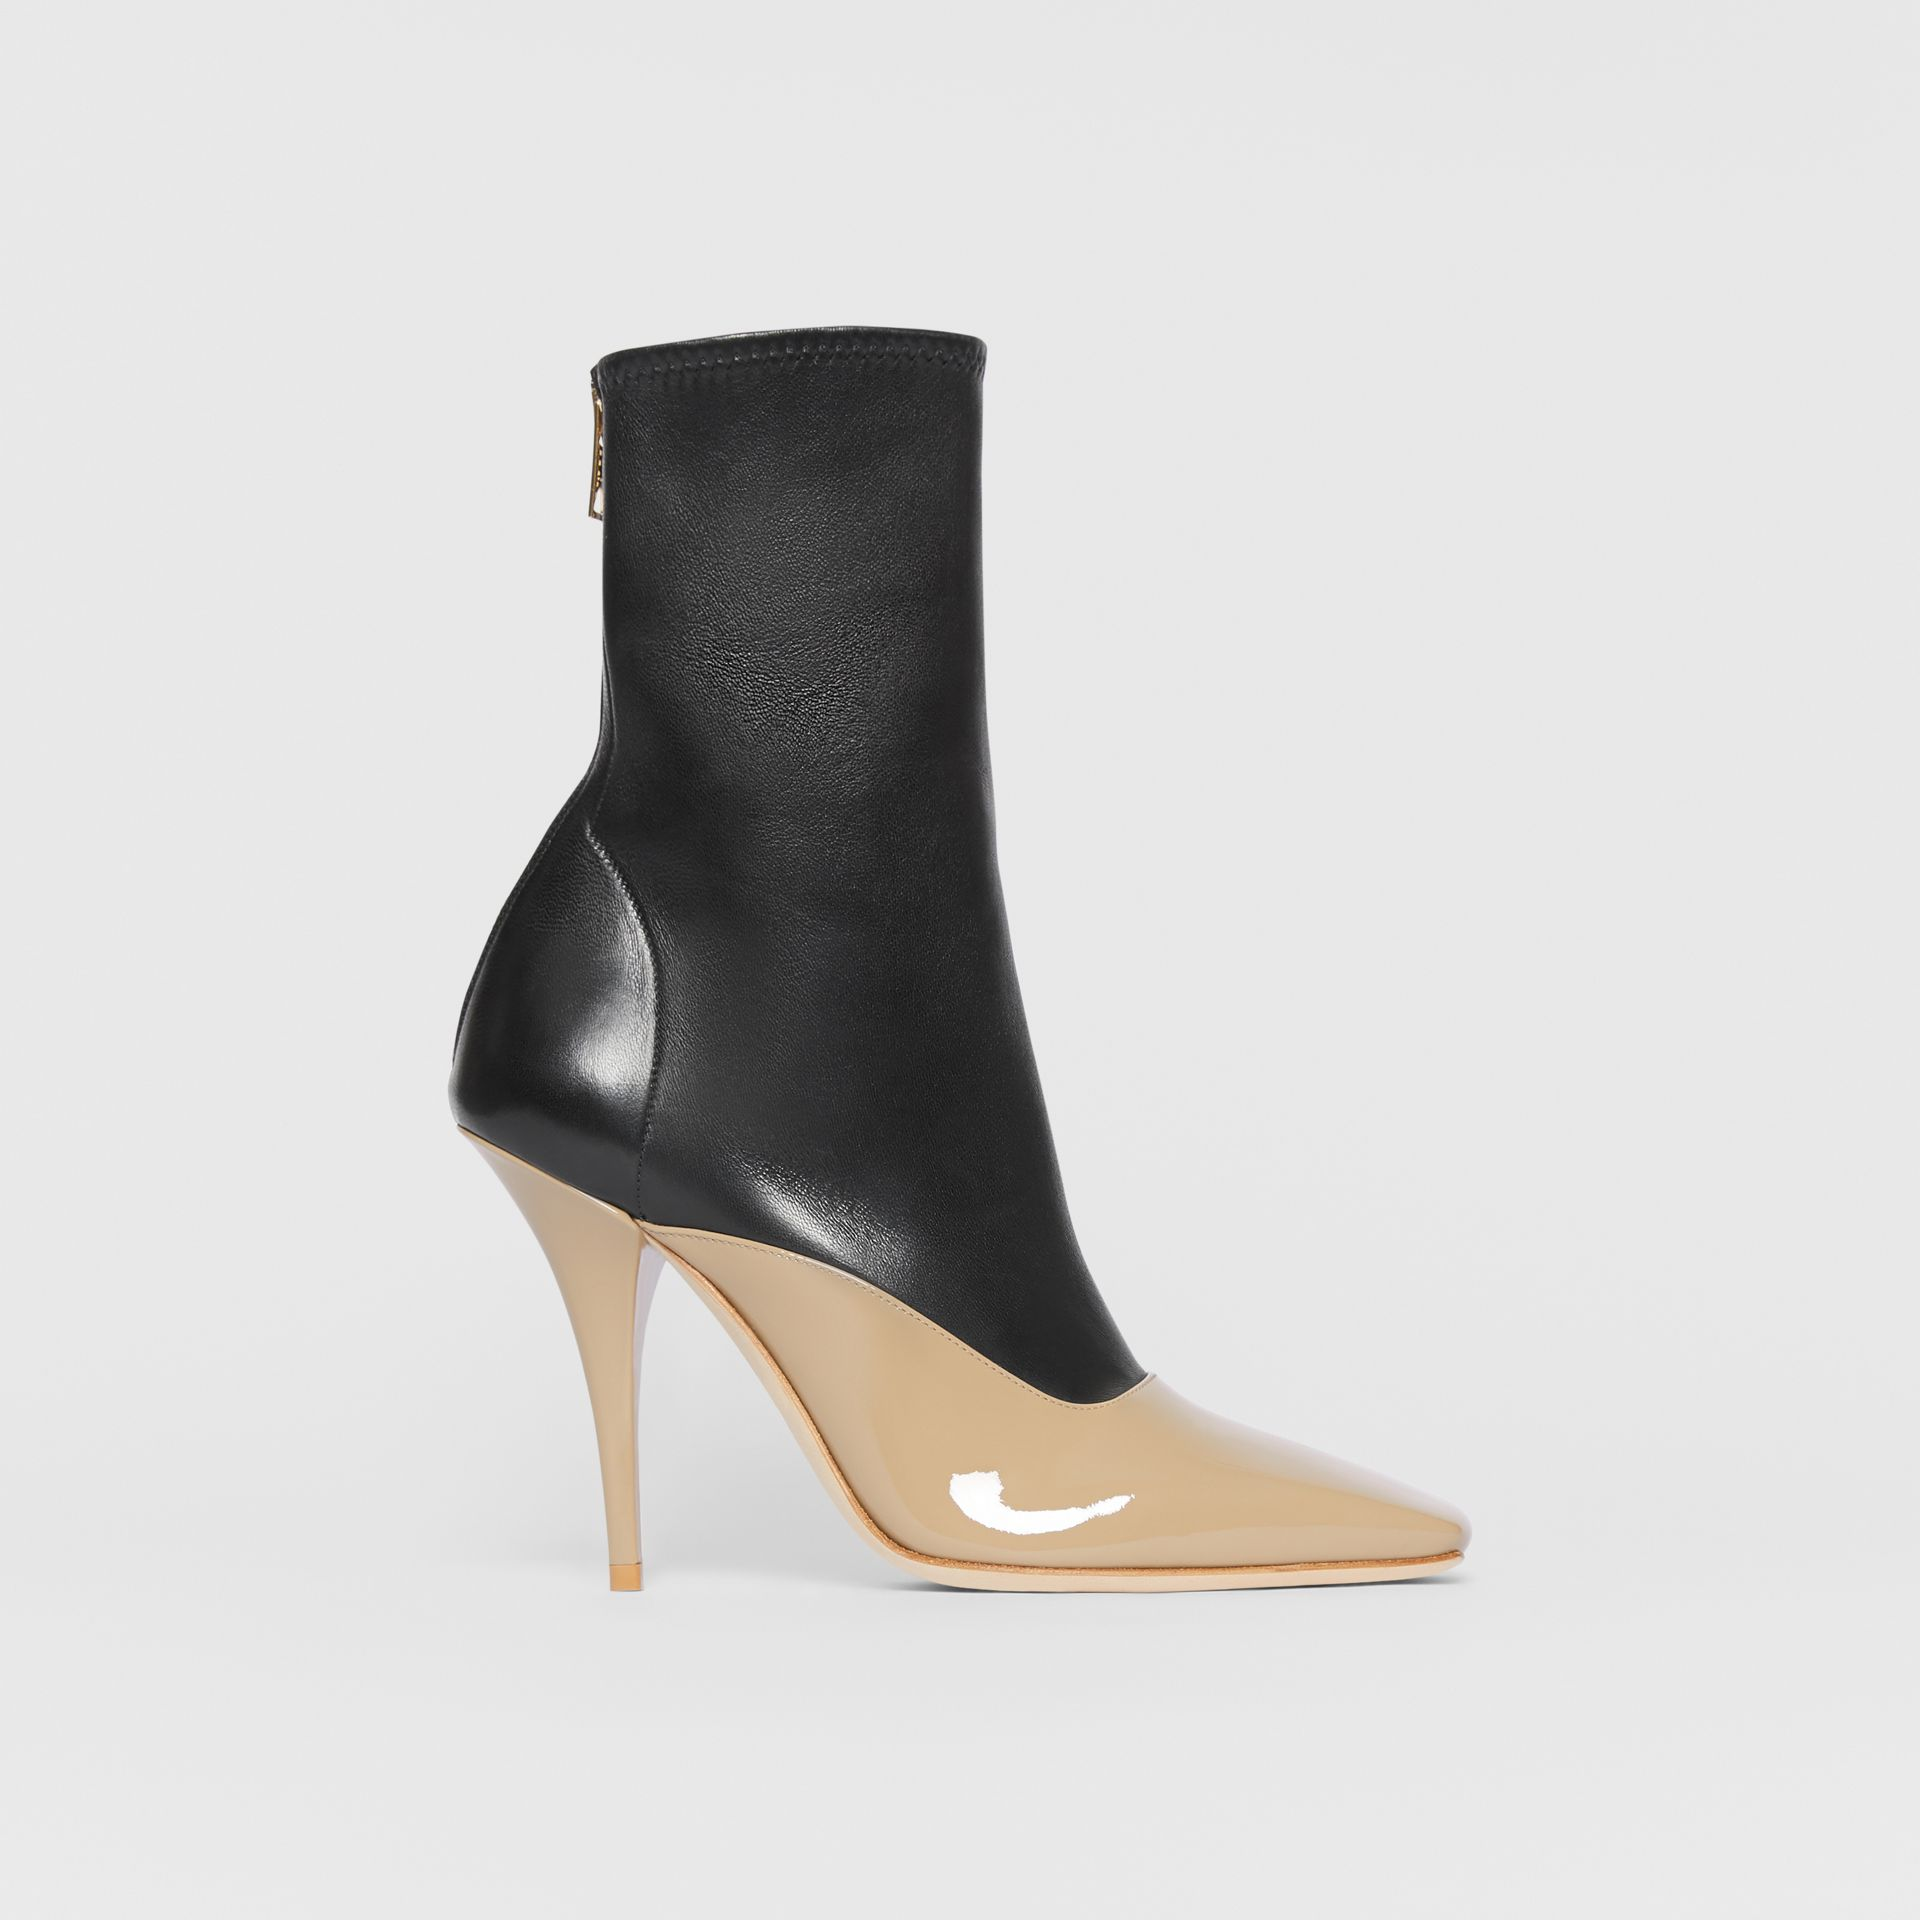 Two-tone Lambskin and Patent Leather Ankle Boots in Dark Honey/black - Women | Burberry - gallery image 5